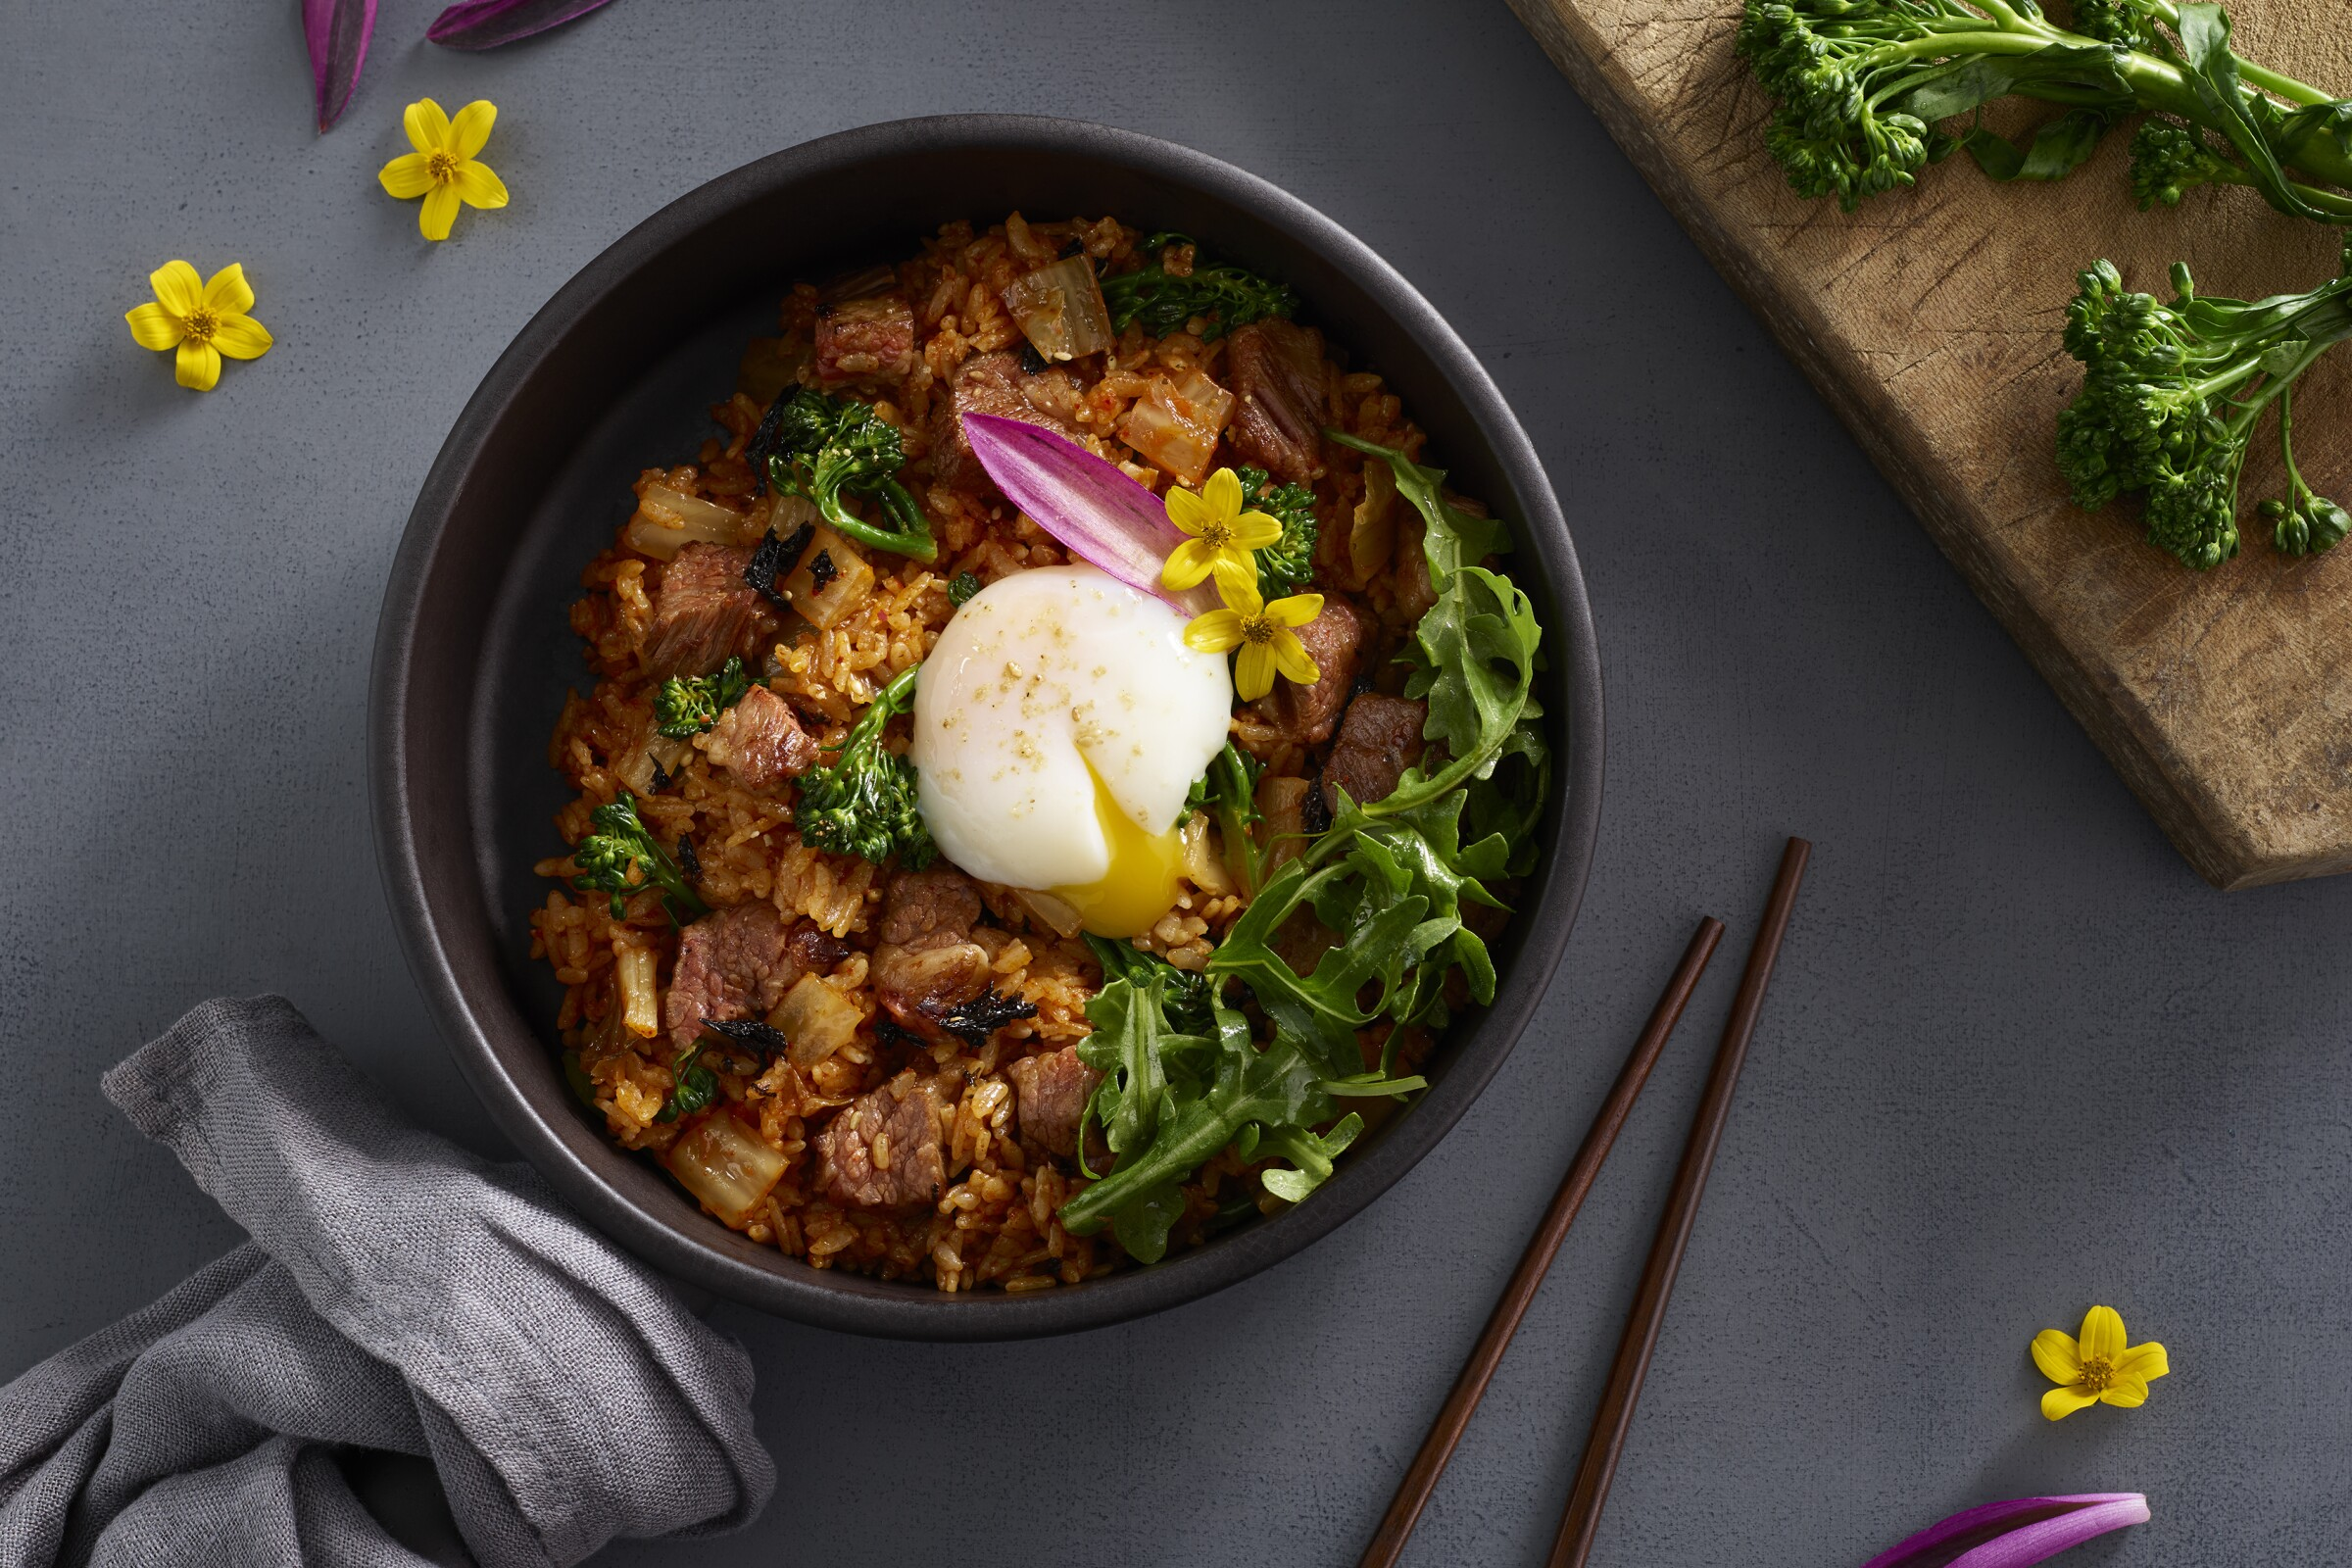 The new Bibigo Kitchen at Fashion Valley puts a modern, elegant twist on casual Korean food, like this steak kimchi fried rice served in a hot stone bowl, with a sous vide egg.